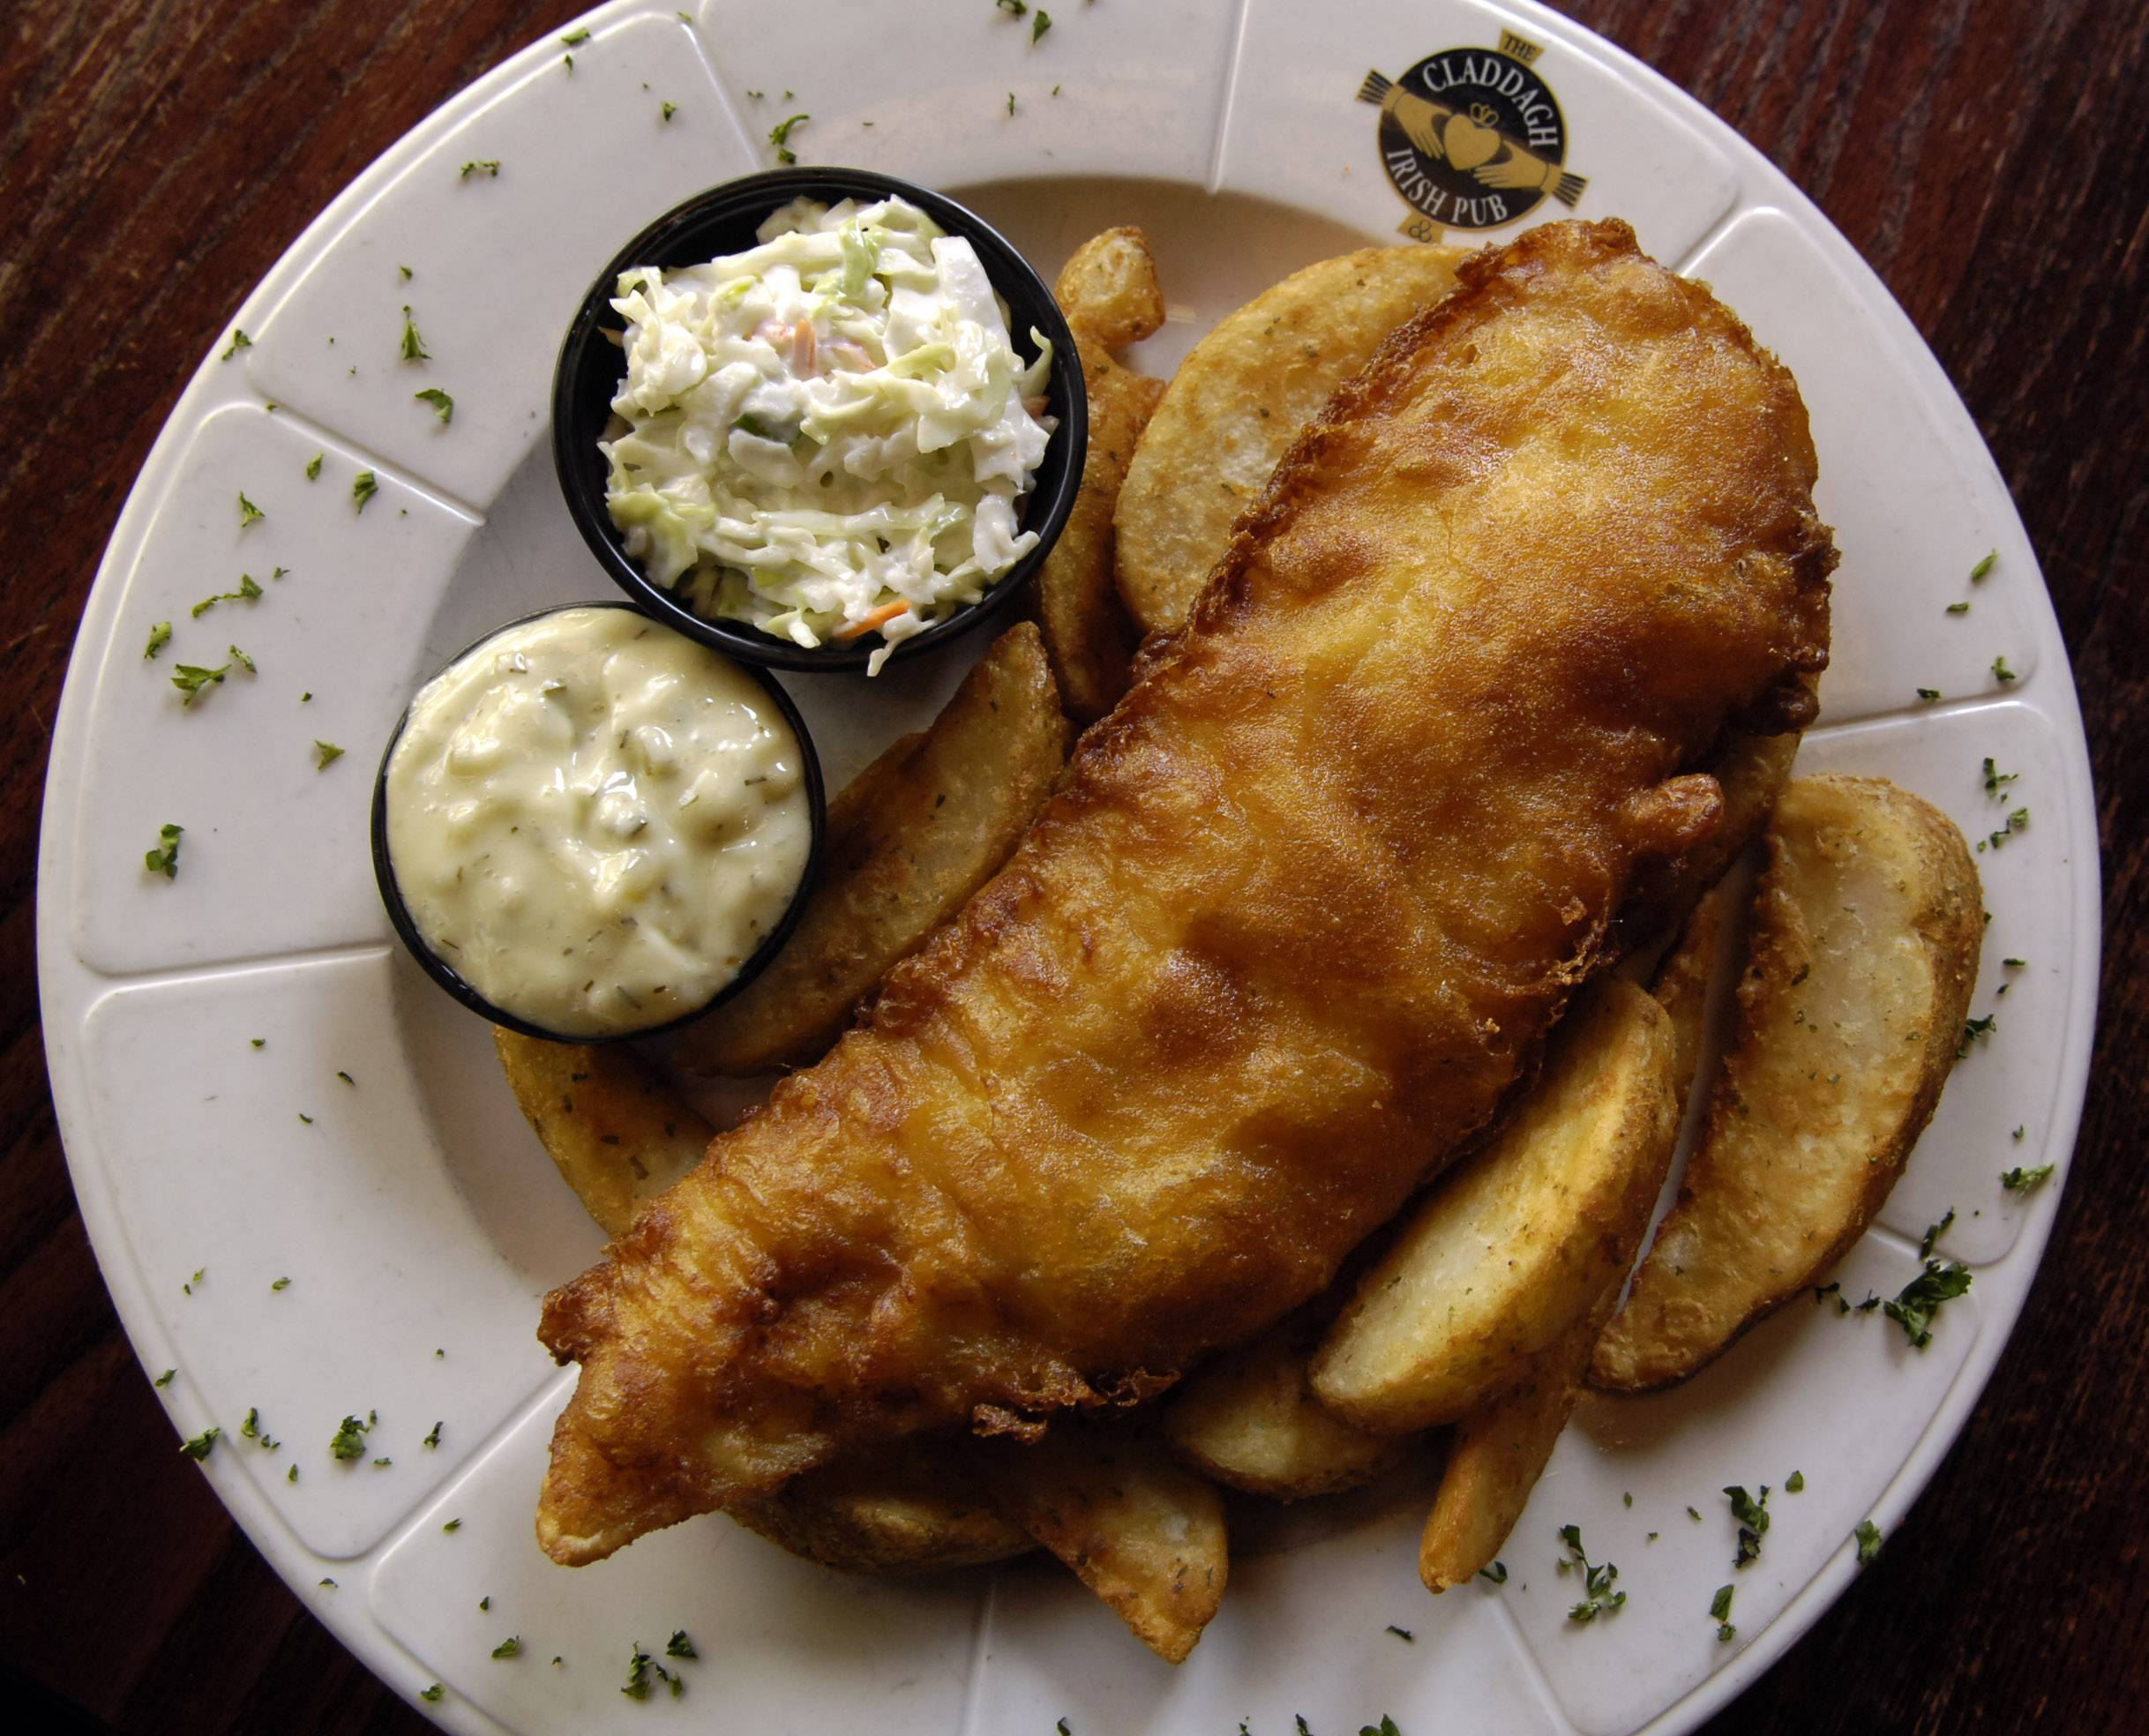 Favorites like fish and chips help celebrants get in the mood for St. Patrick's Day at Claddagh Irish Pub in Geneva.